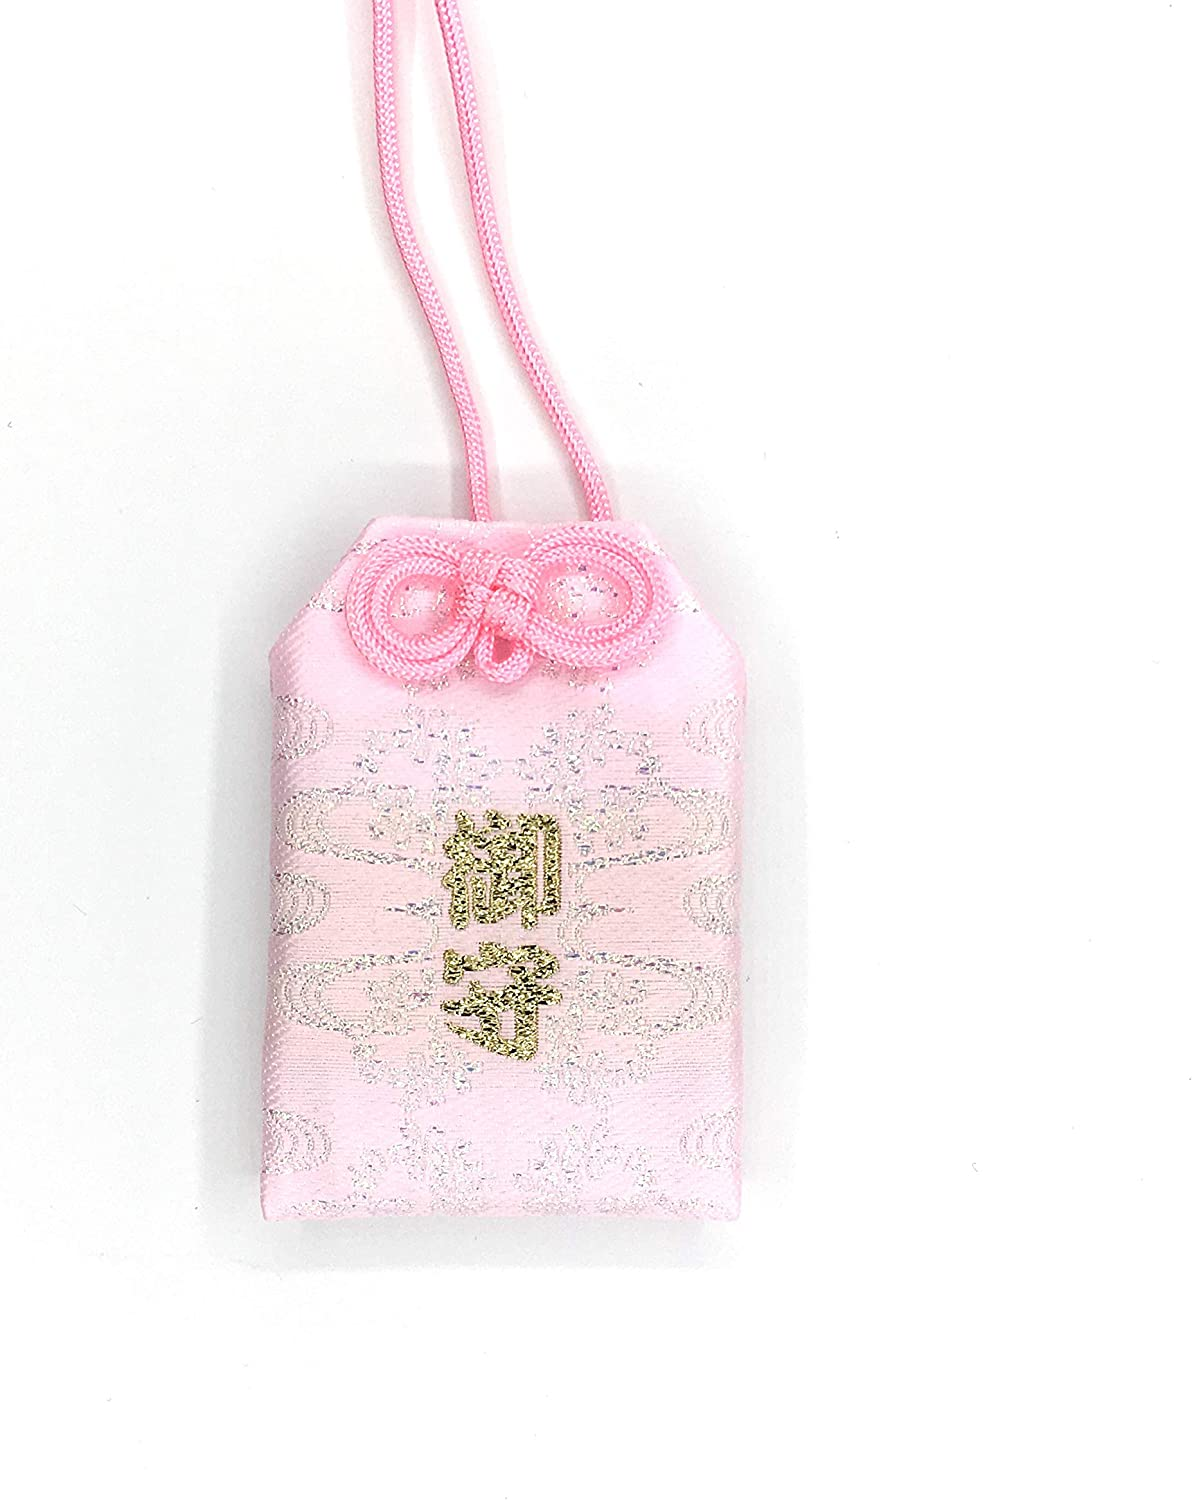 Japanese Omamori Amulet Lucky Charm Good Luck Charm for Love Fulfilled